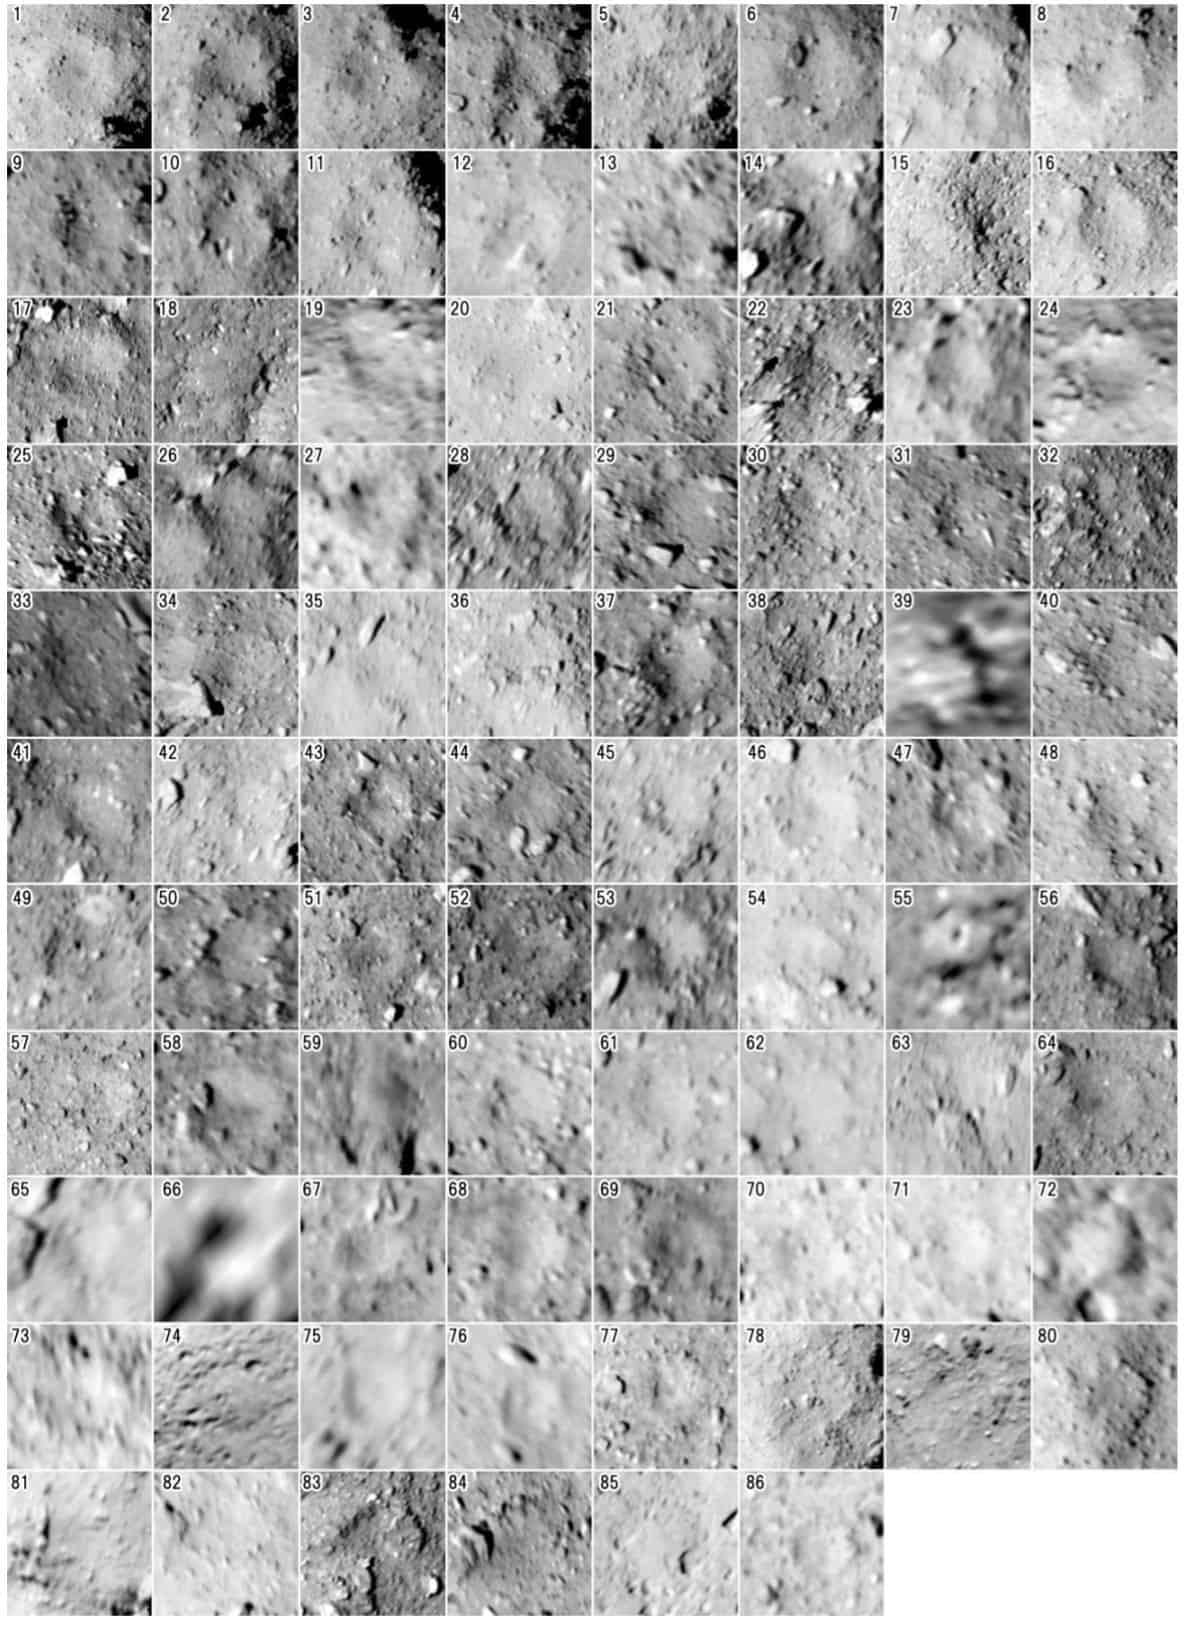 Crater candidates on the asteroid Ryugu